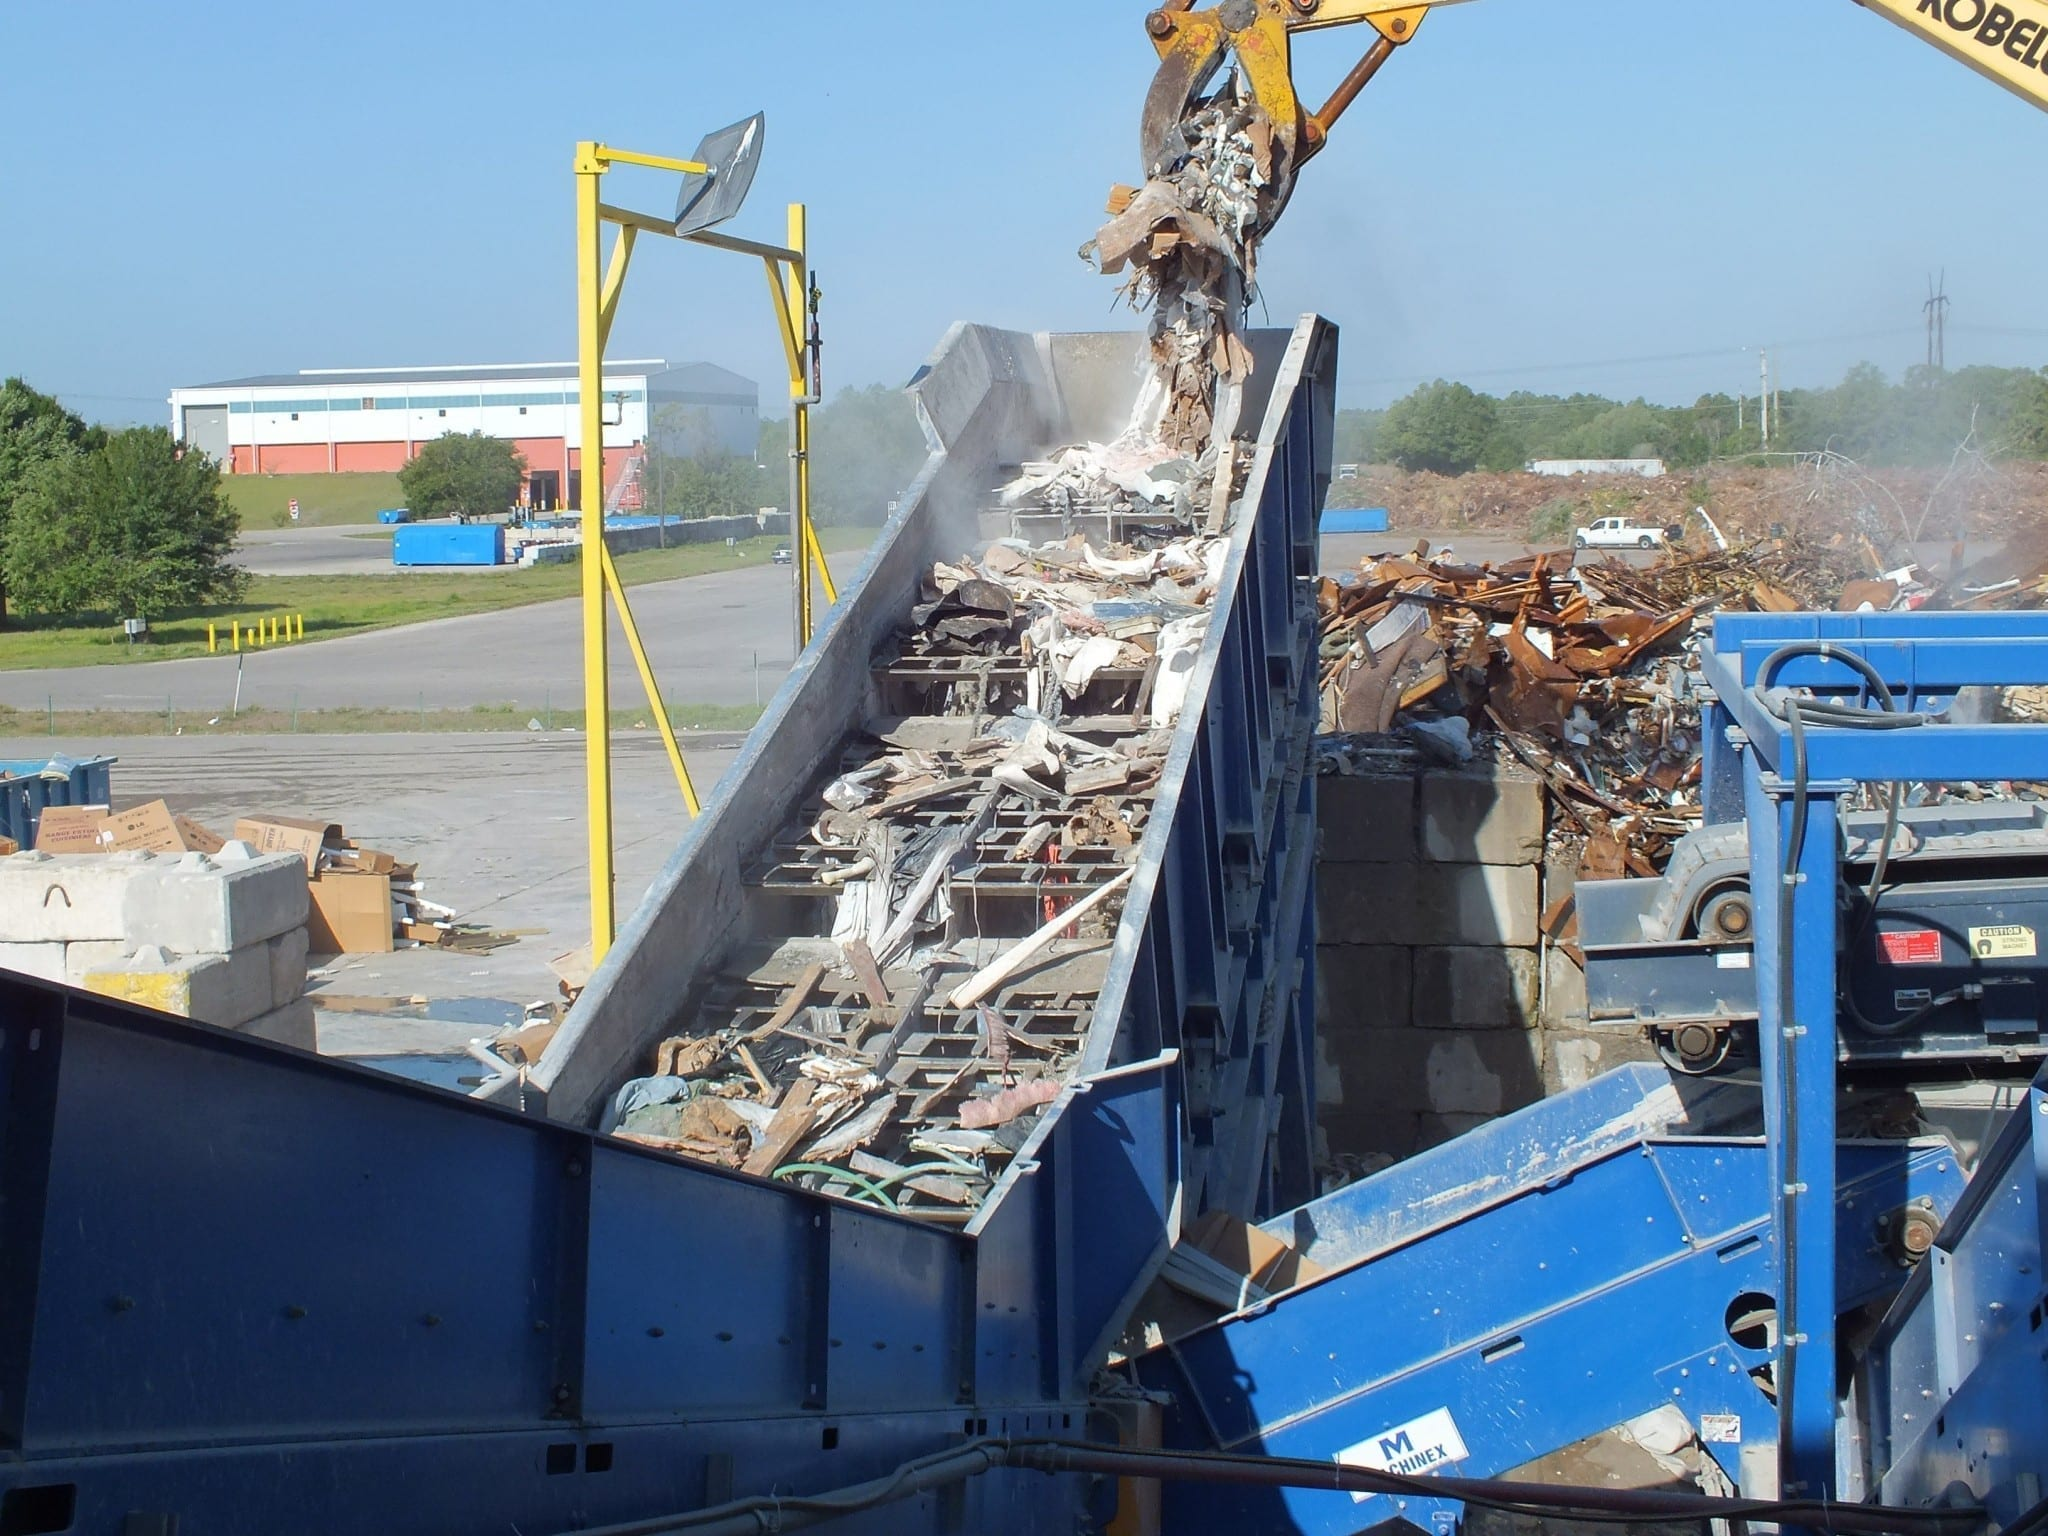 Construction & demolition waste conveyor